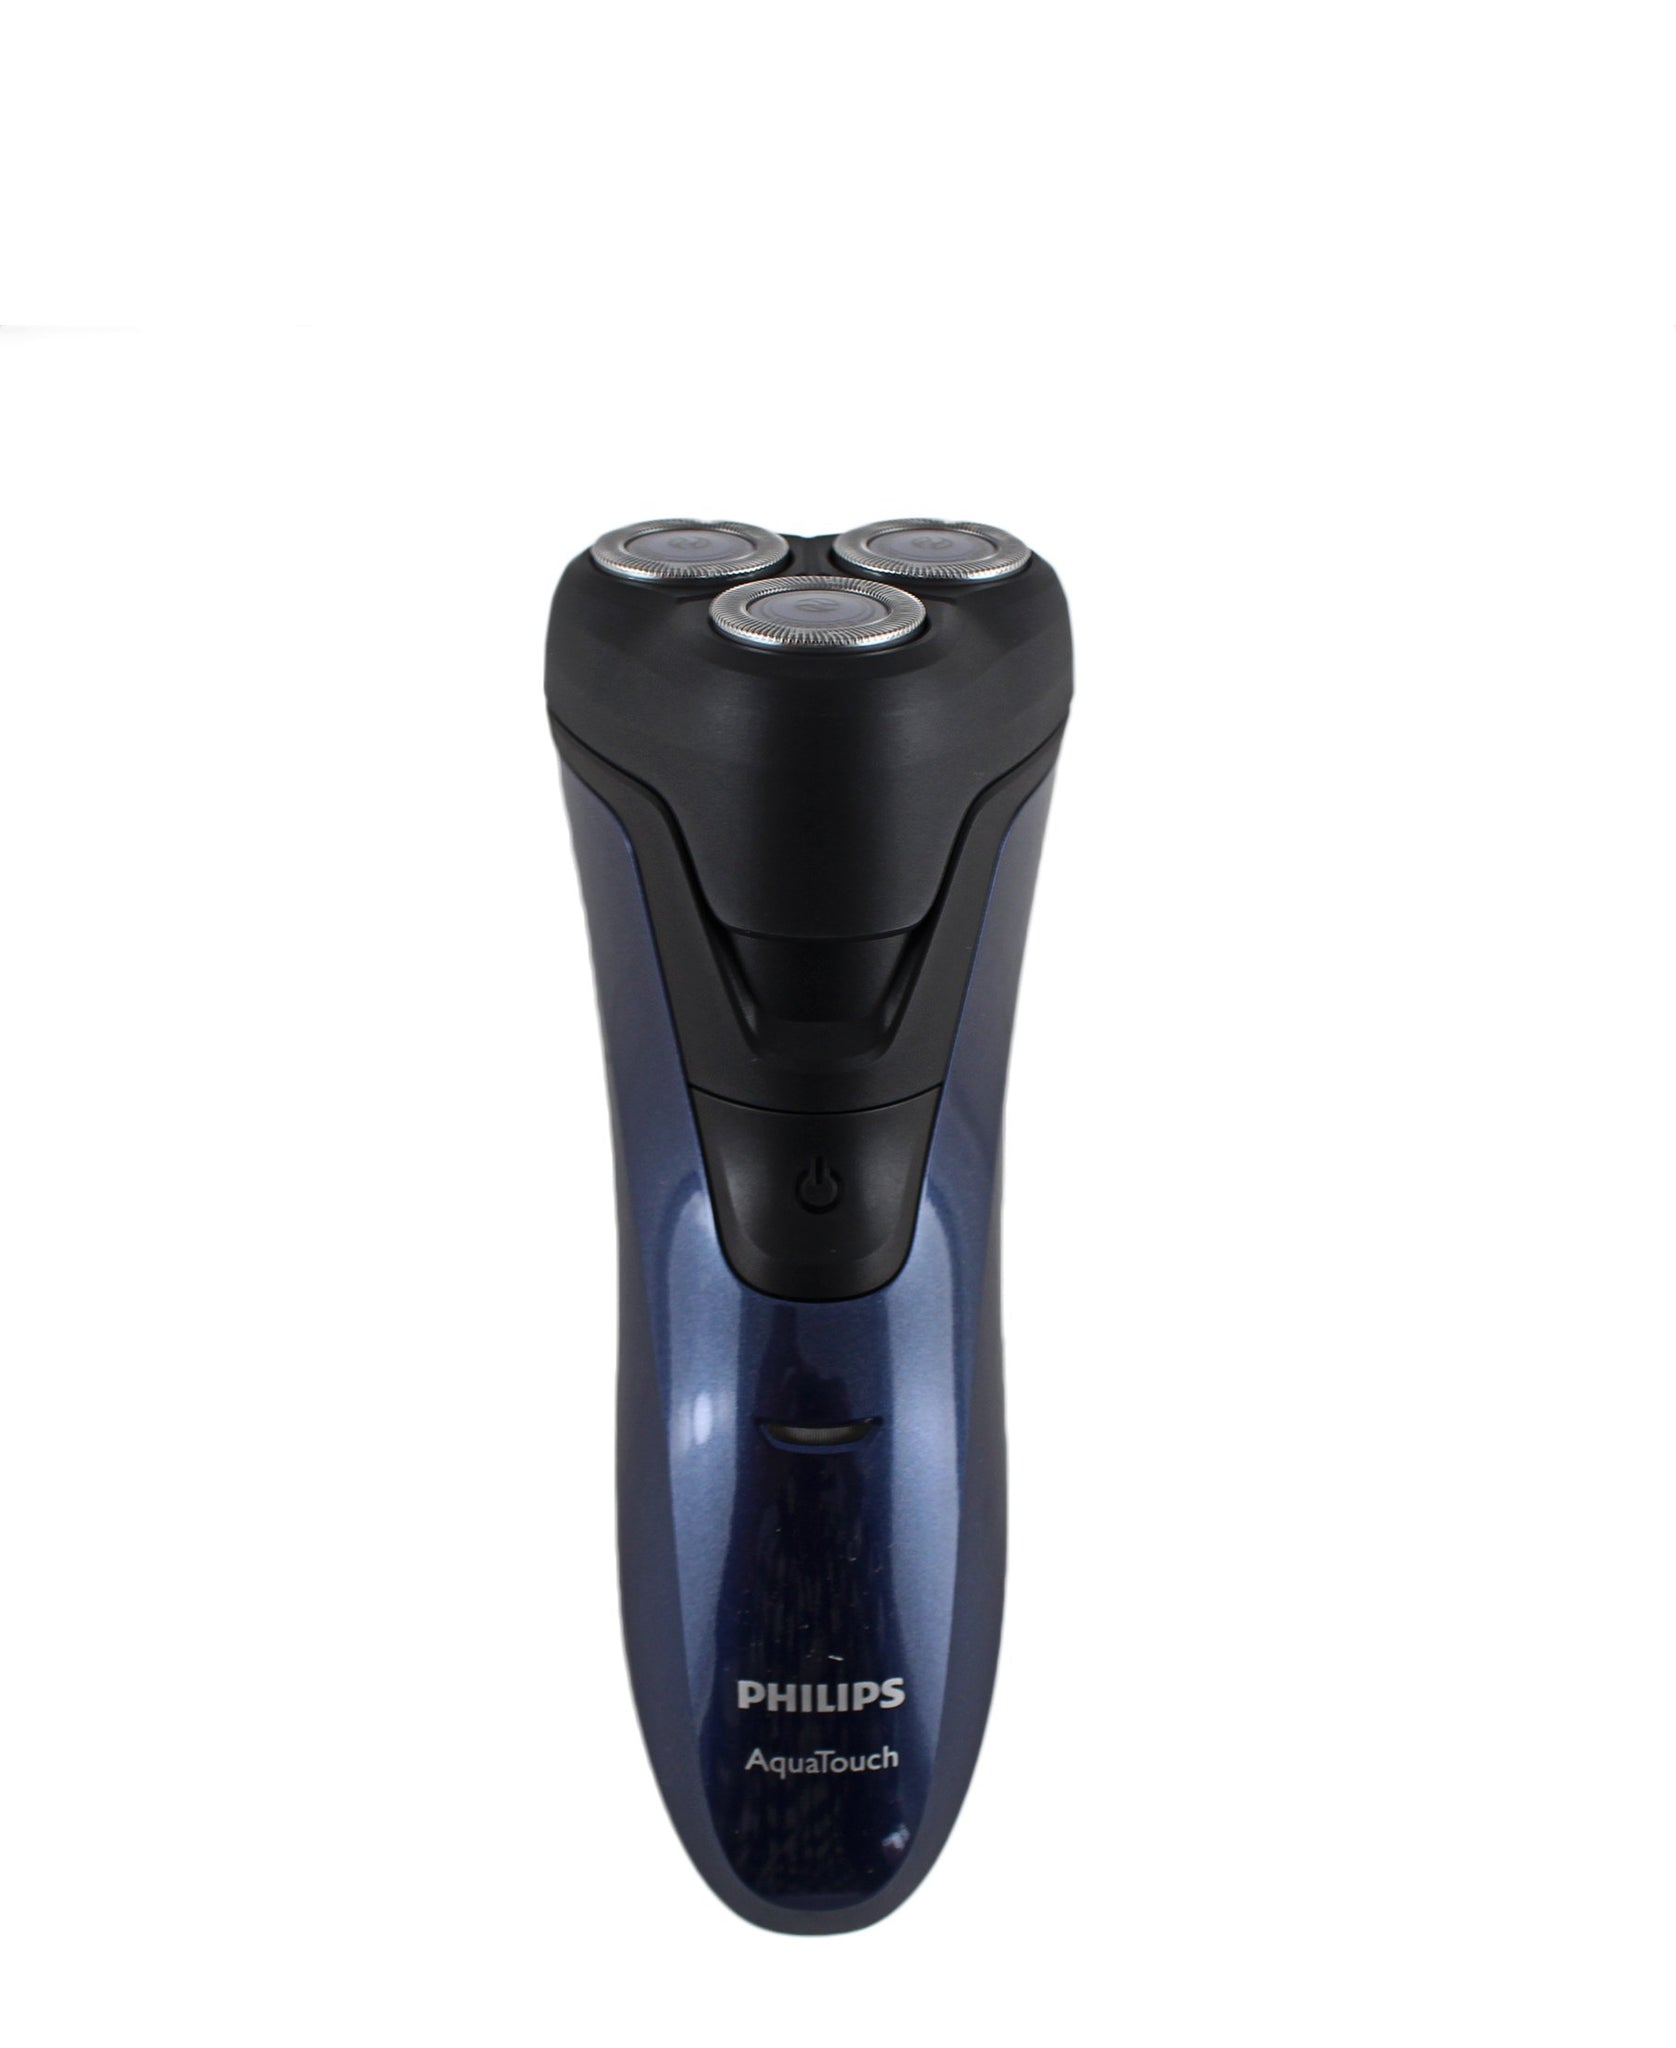 Philips AquaTouch Electric Shaver - Black